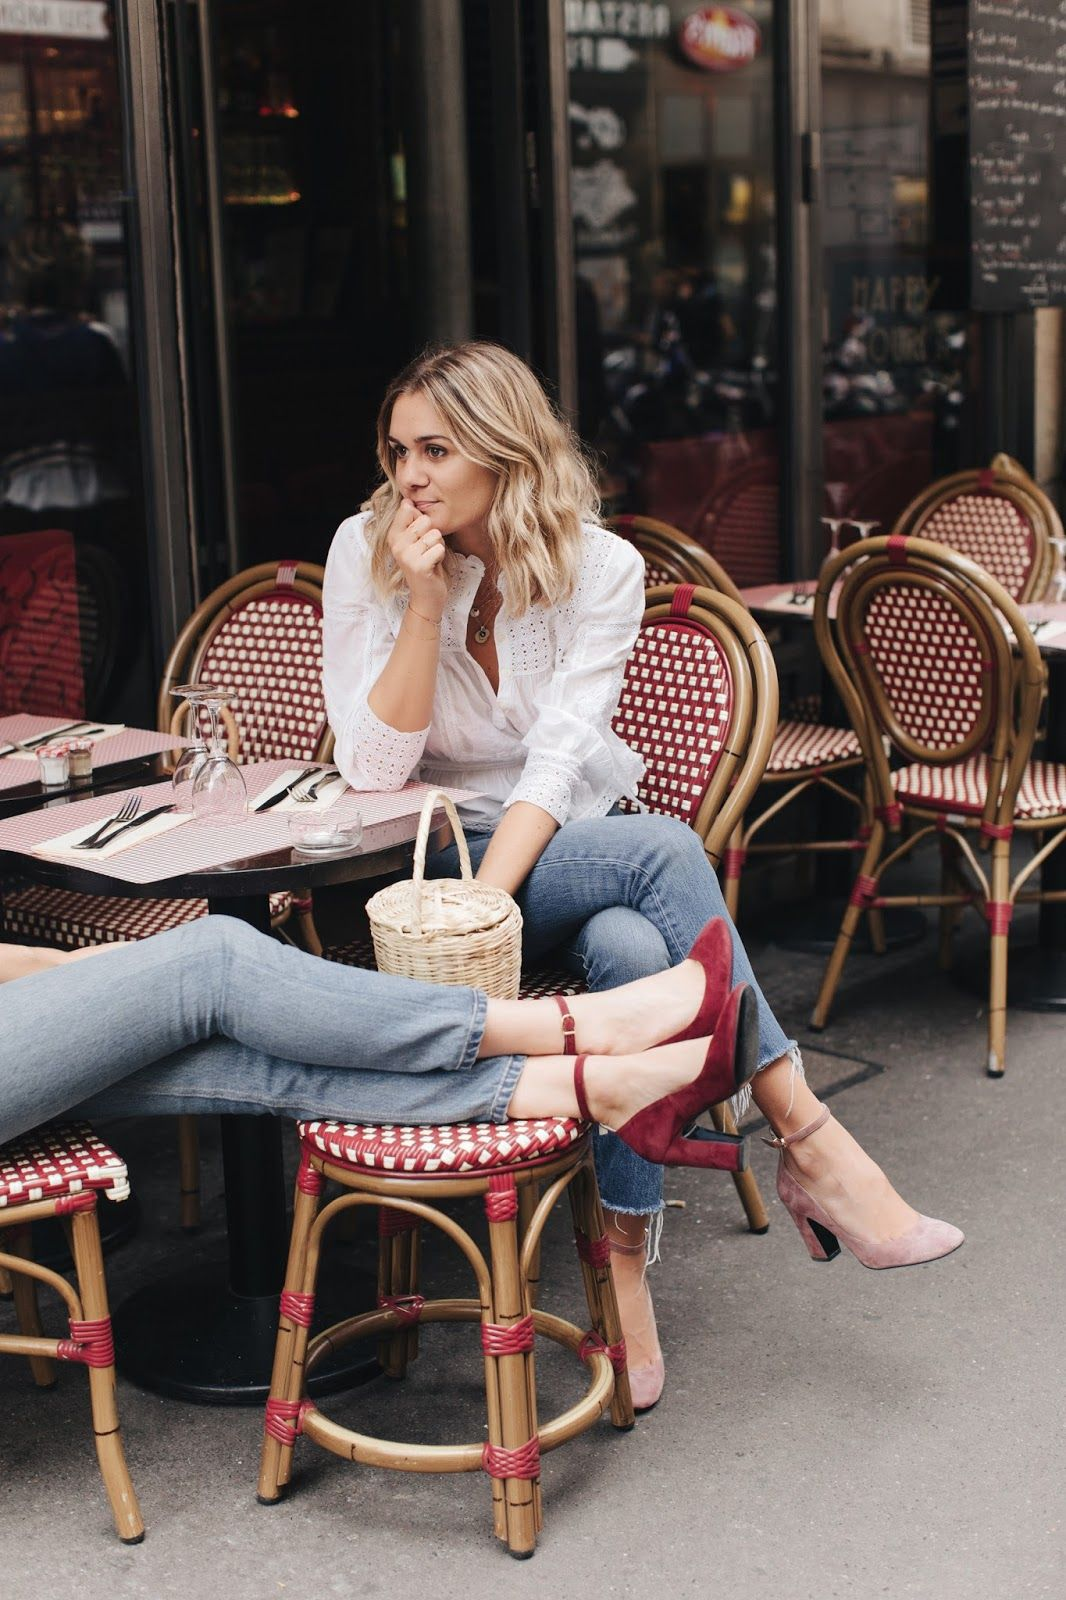 Tags french fashion la redoute secrets to french style style -  Ootd Adenorah S Simply Chic Look Feels Oh So French French Girl Stylefrench